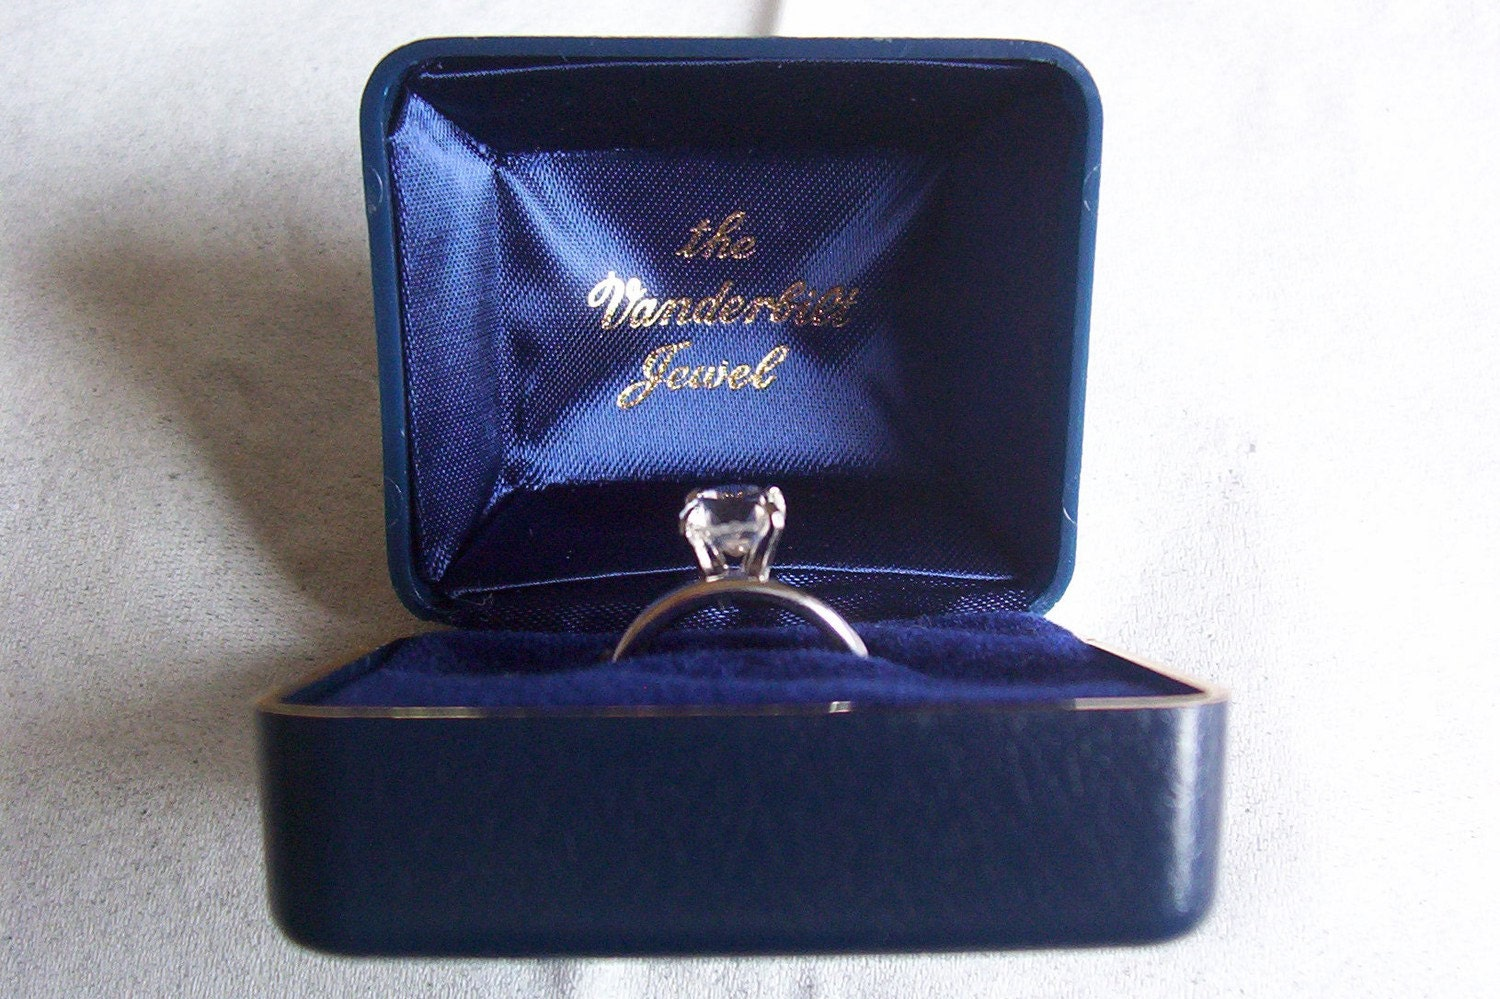 Vintage Size 5 The Vanderbilt Jewel Solitare Silver Tone Ring